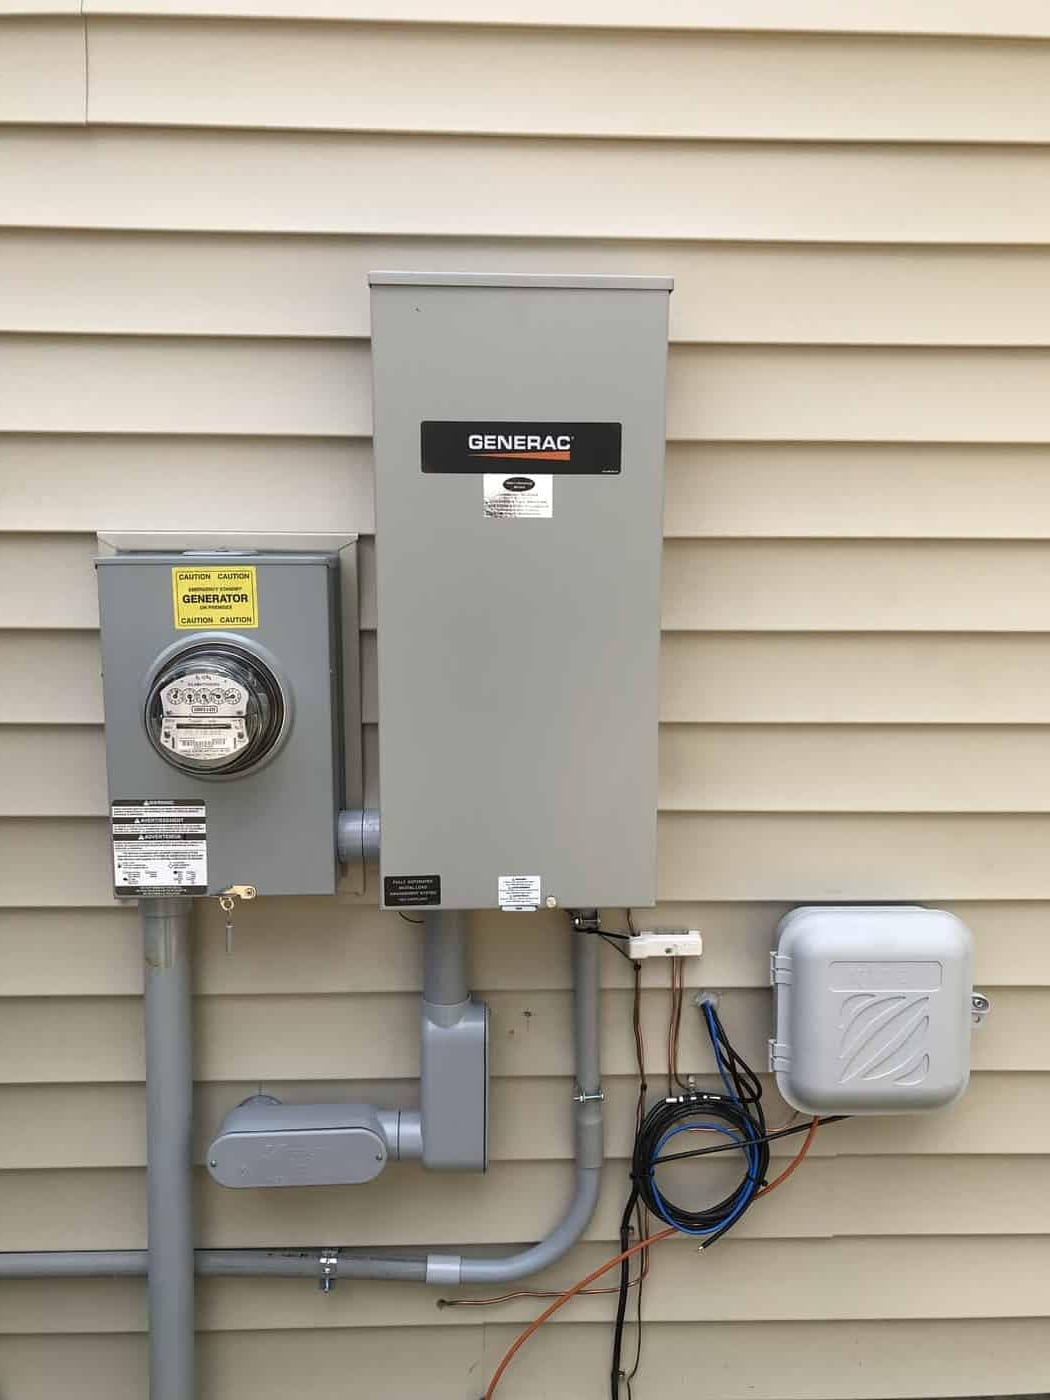 7.9.19 Chesterfield Generac Automatic Transfer Switch